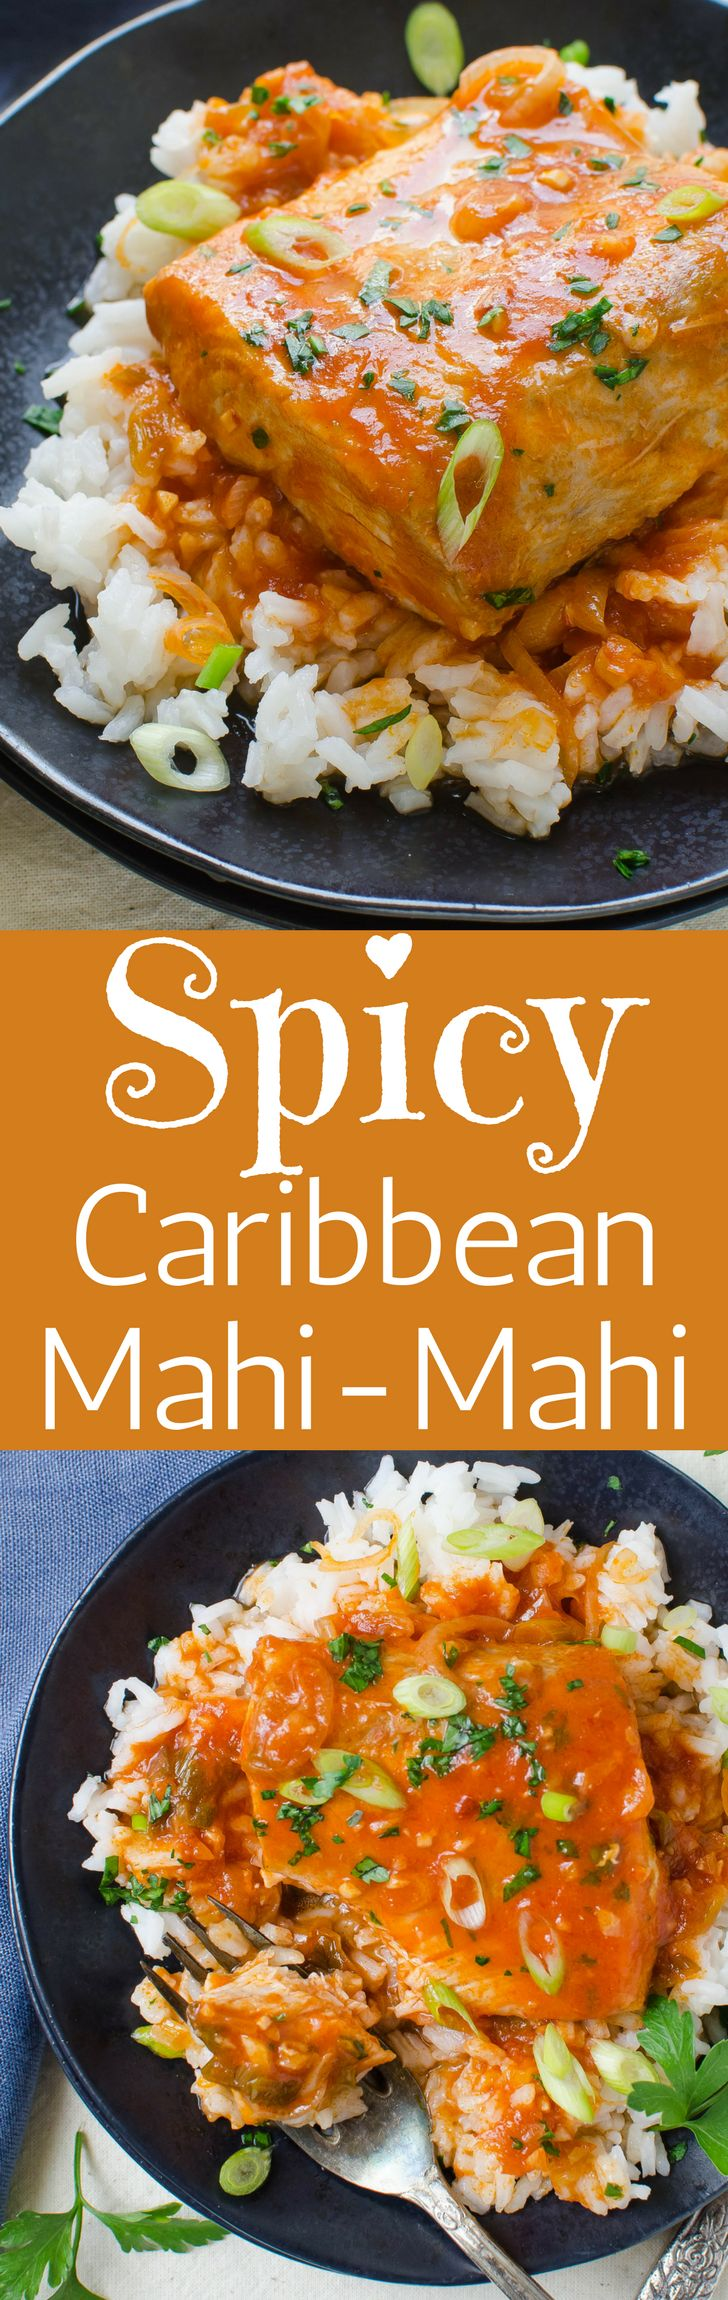 The easiest way to cook fish is poached in an island-style tomato sauce. Spicy Caribbean Mahi Mahi is a healthy and satisfying main course.